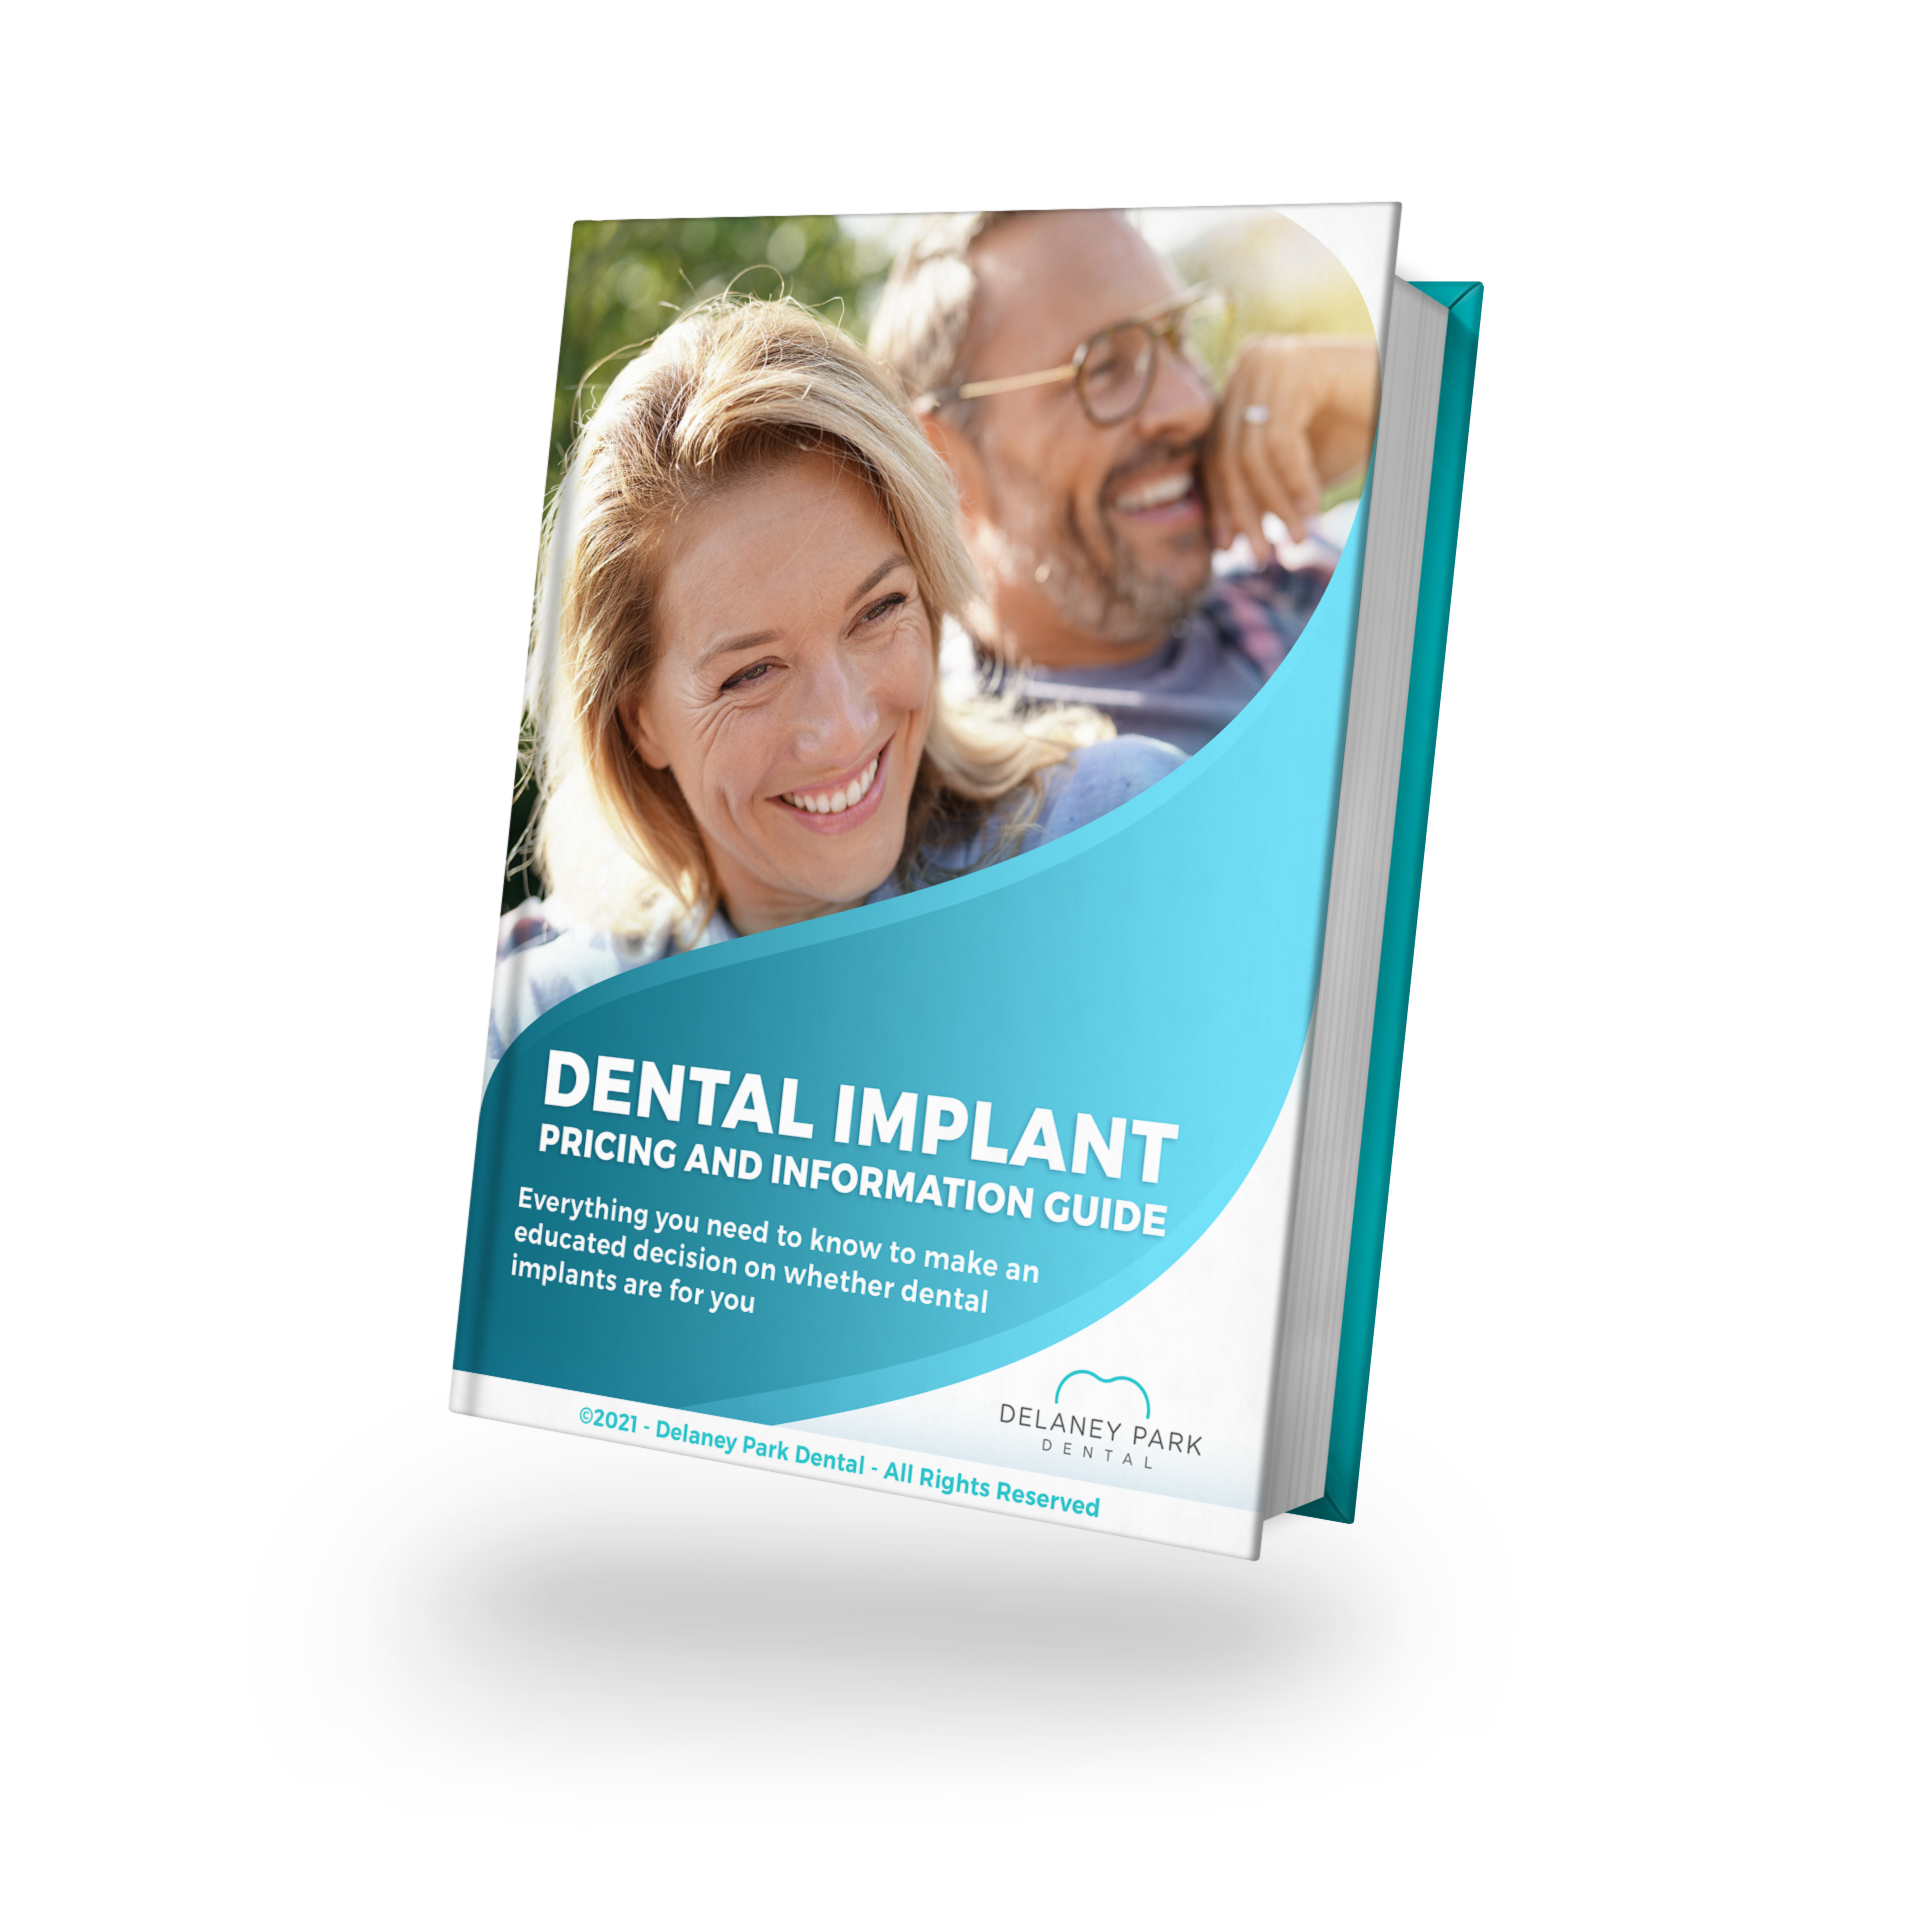 Dental implants Cost Guide Book